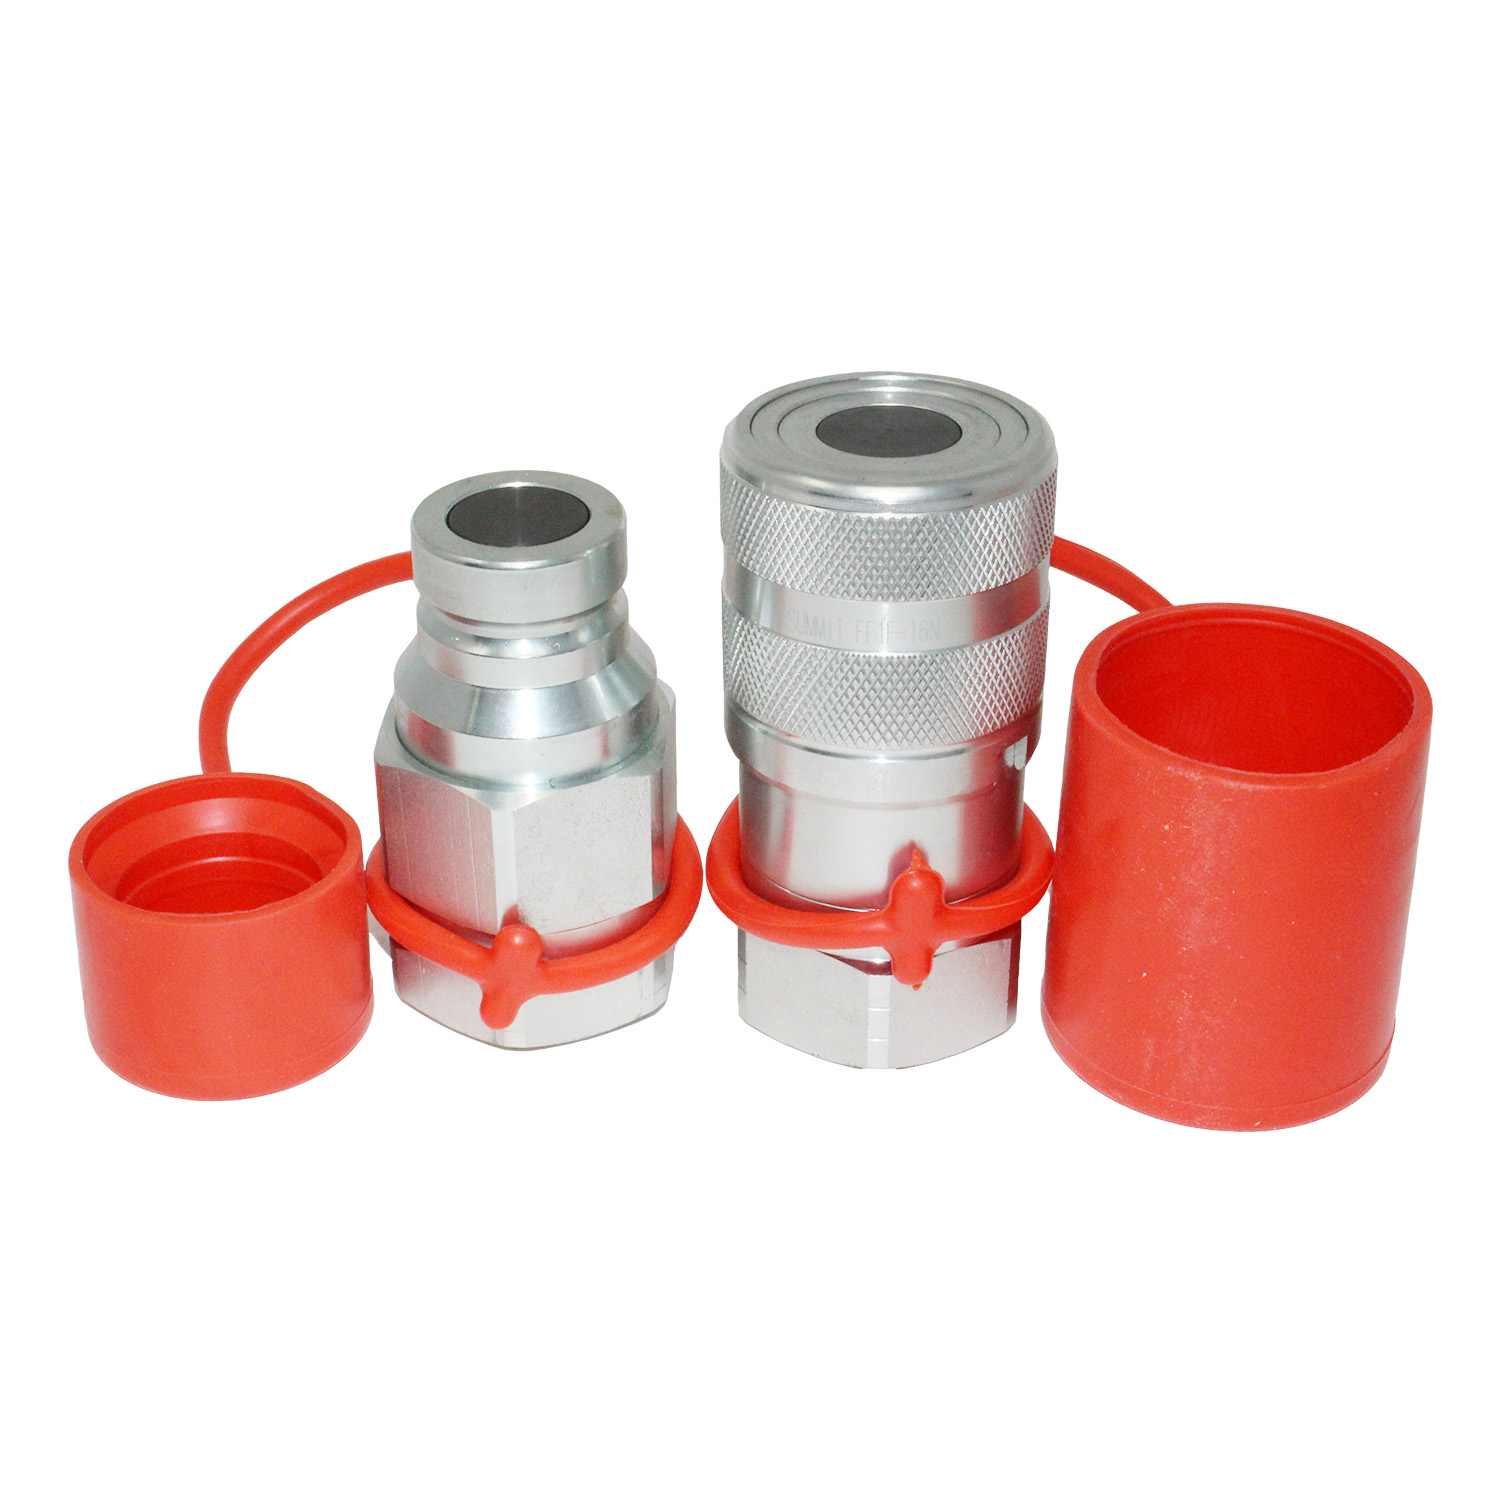 Flat face hydraulic quick connect coupler set sae